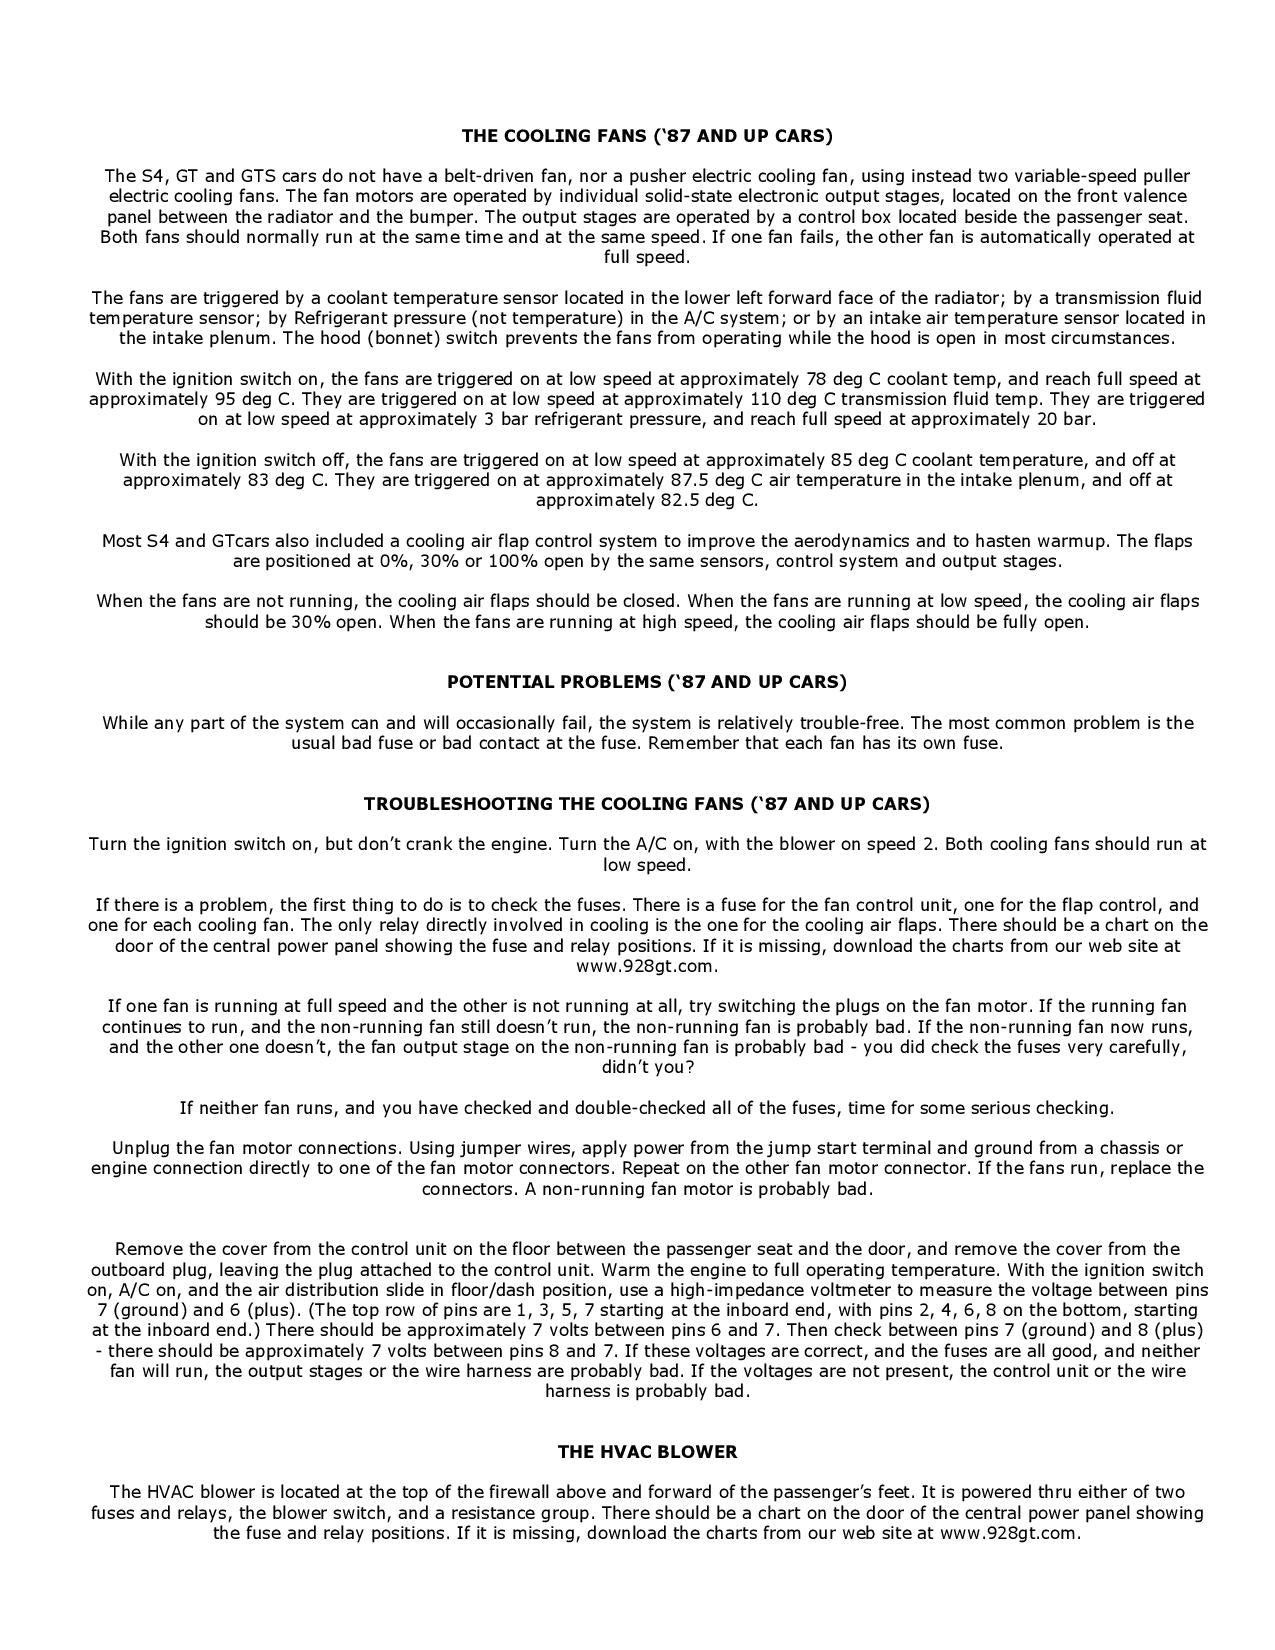 Troubleshooting the Refigeration System pg3